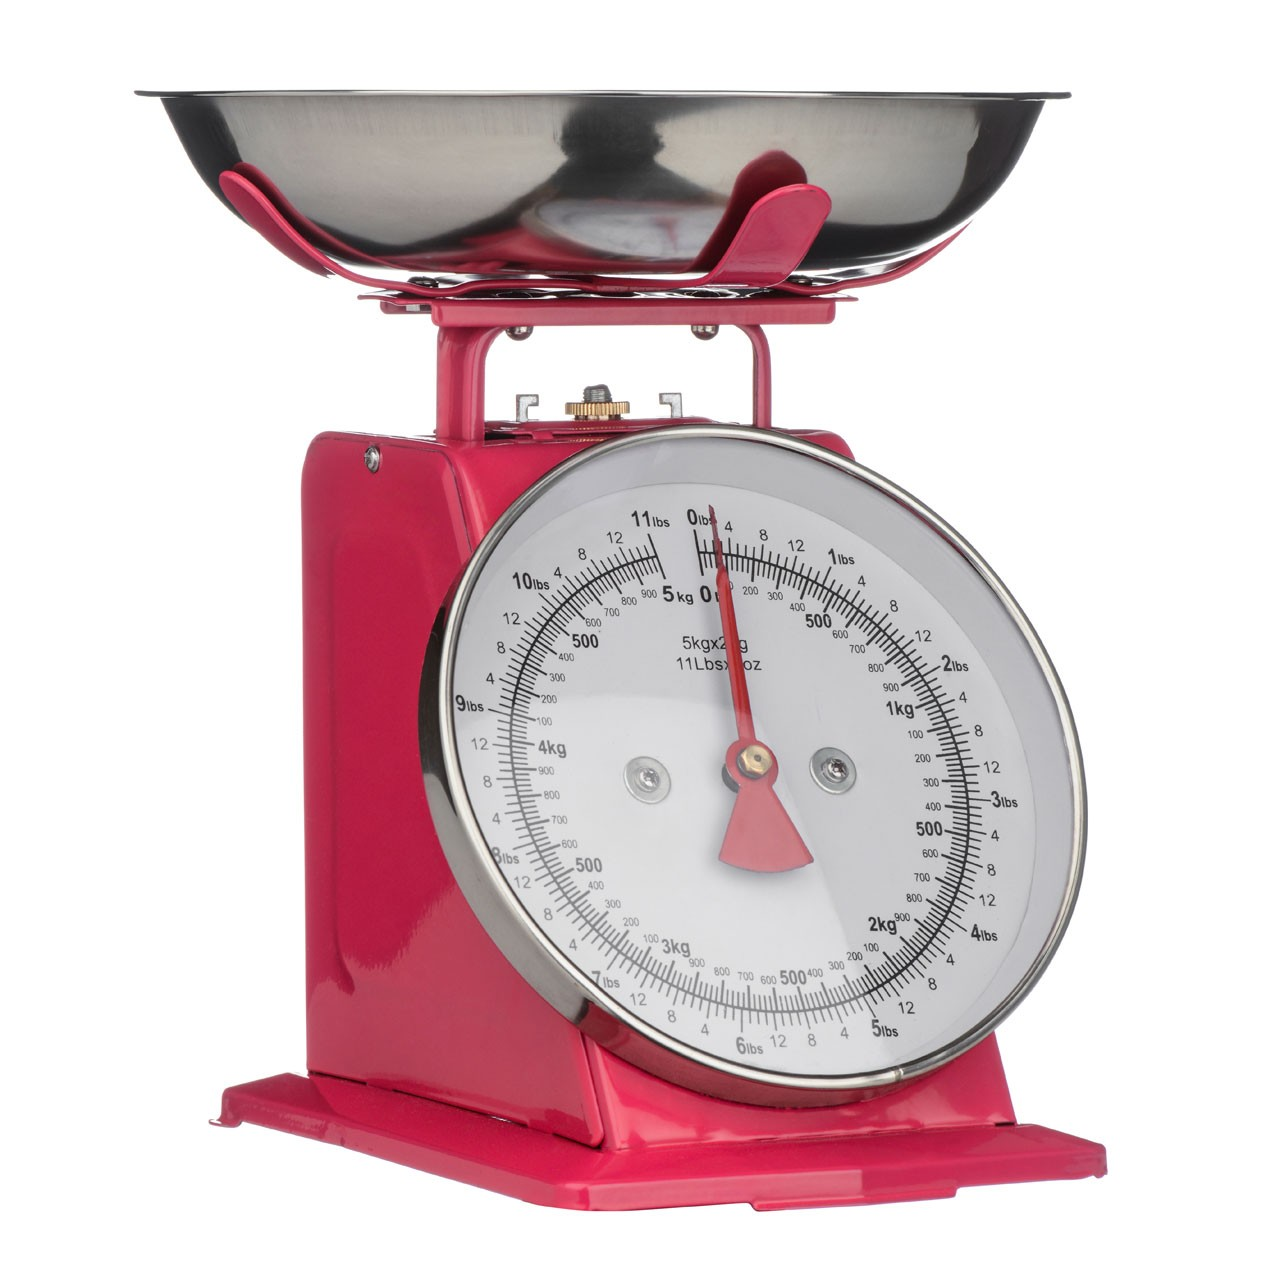 5Kg Kitchen Scale Retro Style with S.Steel Bowl - Hot Pink